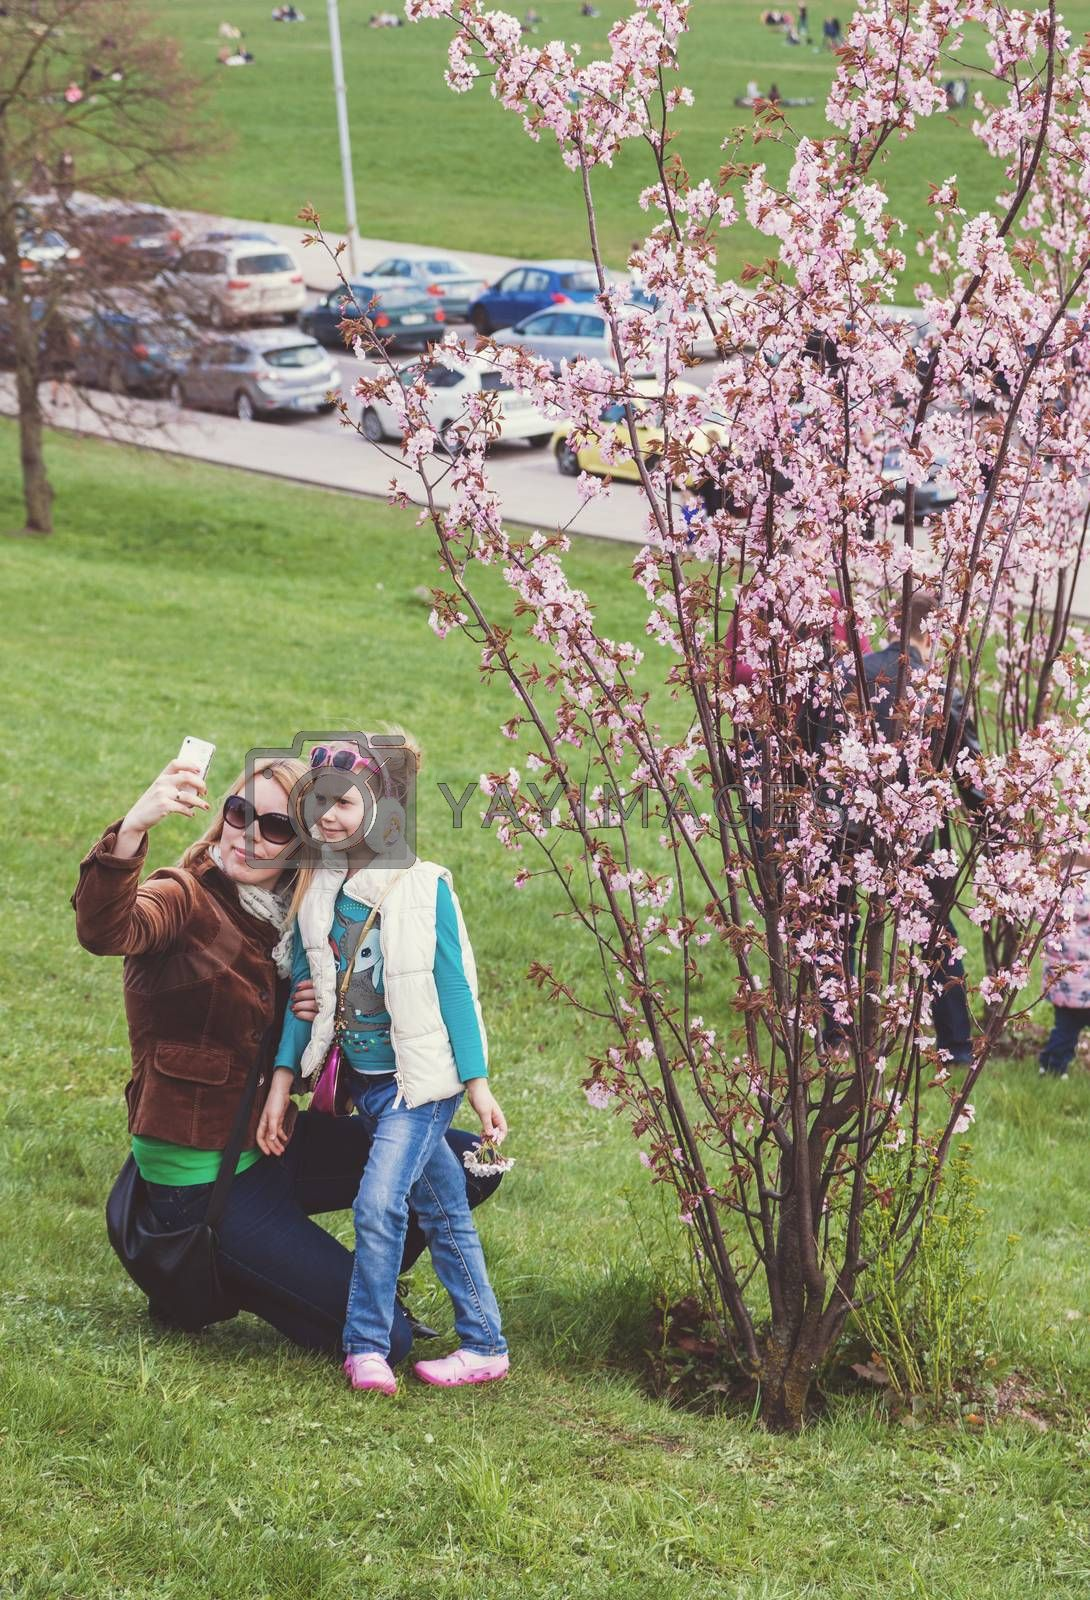 VILNIUS, LITHUANIA - APRIL 25, 2015: Mother taking selfie with her little daughter in front of blossoming cherry tree in Vilnius, Lithuania.